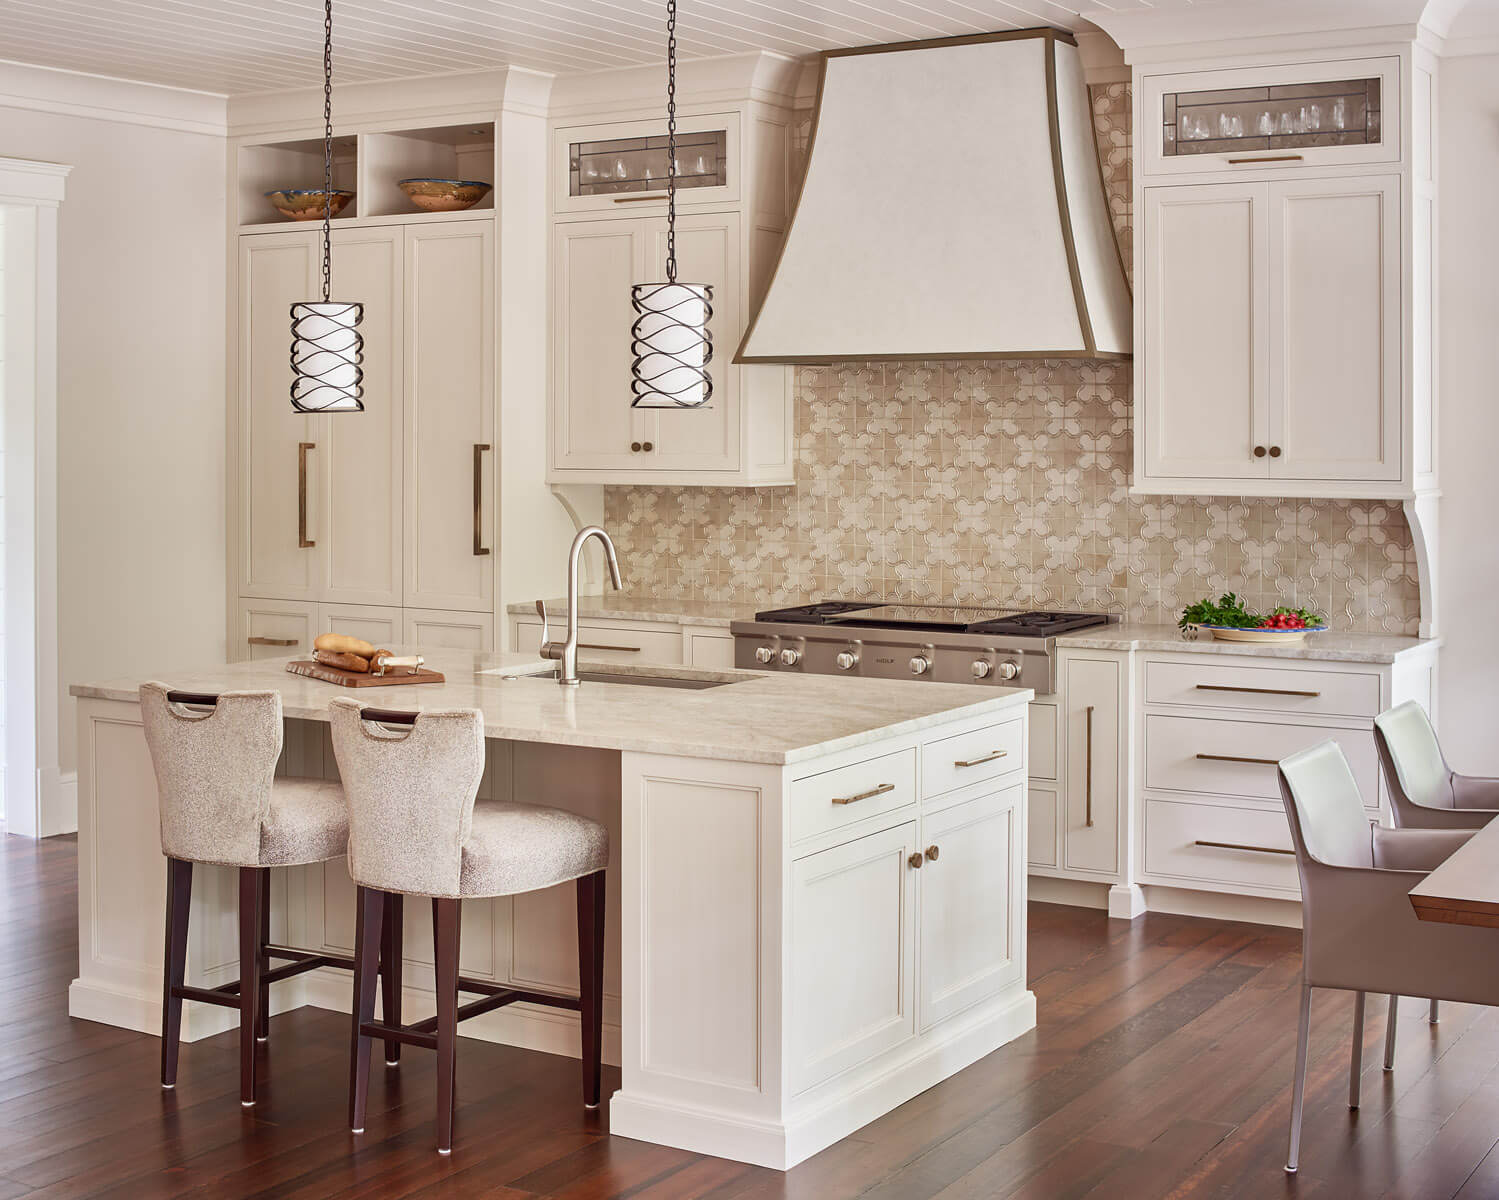 A Cozy Kitchen Style With Kitchen Cabinets Designed For You